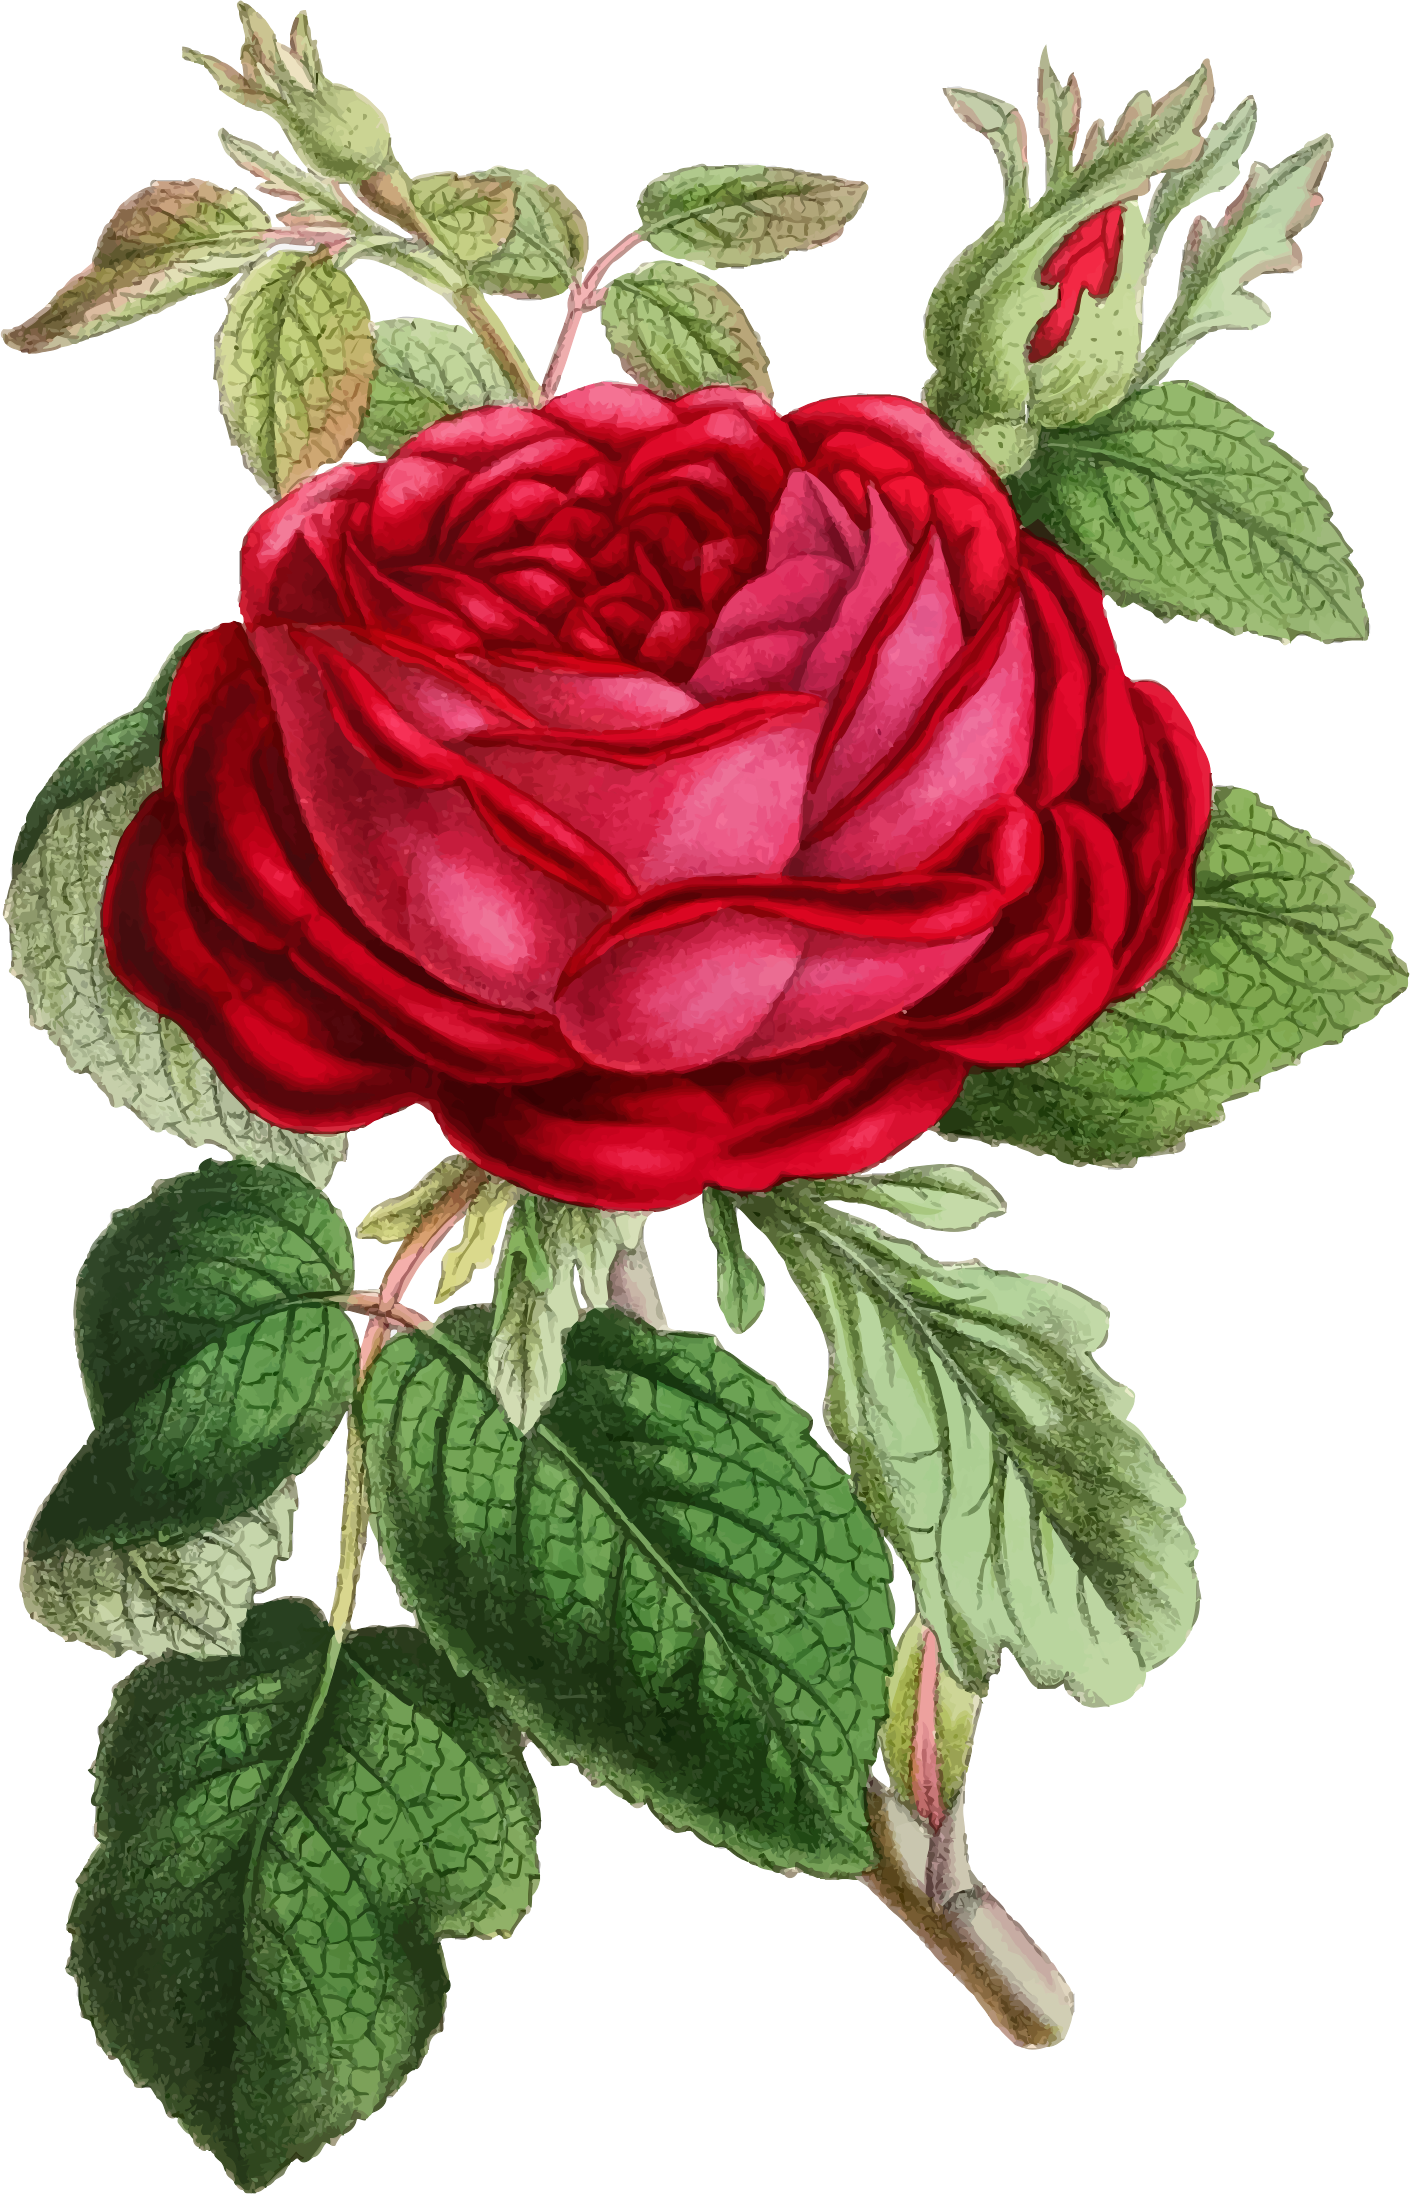 clipart vintage rose illustration red rose clip art borders edges printable red roses clipart borders